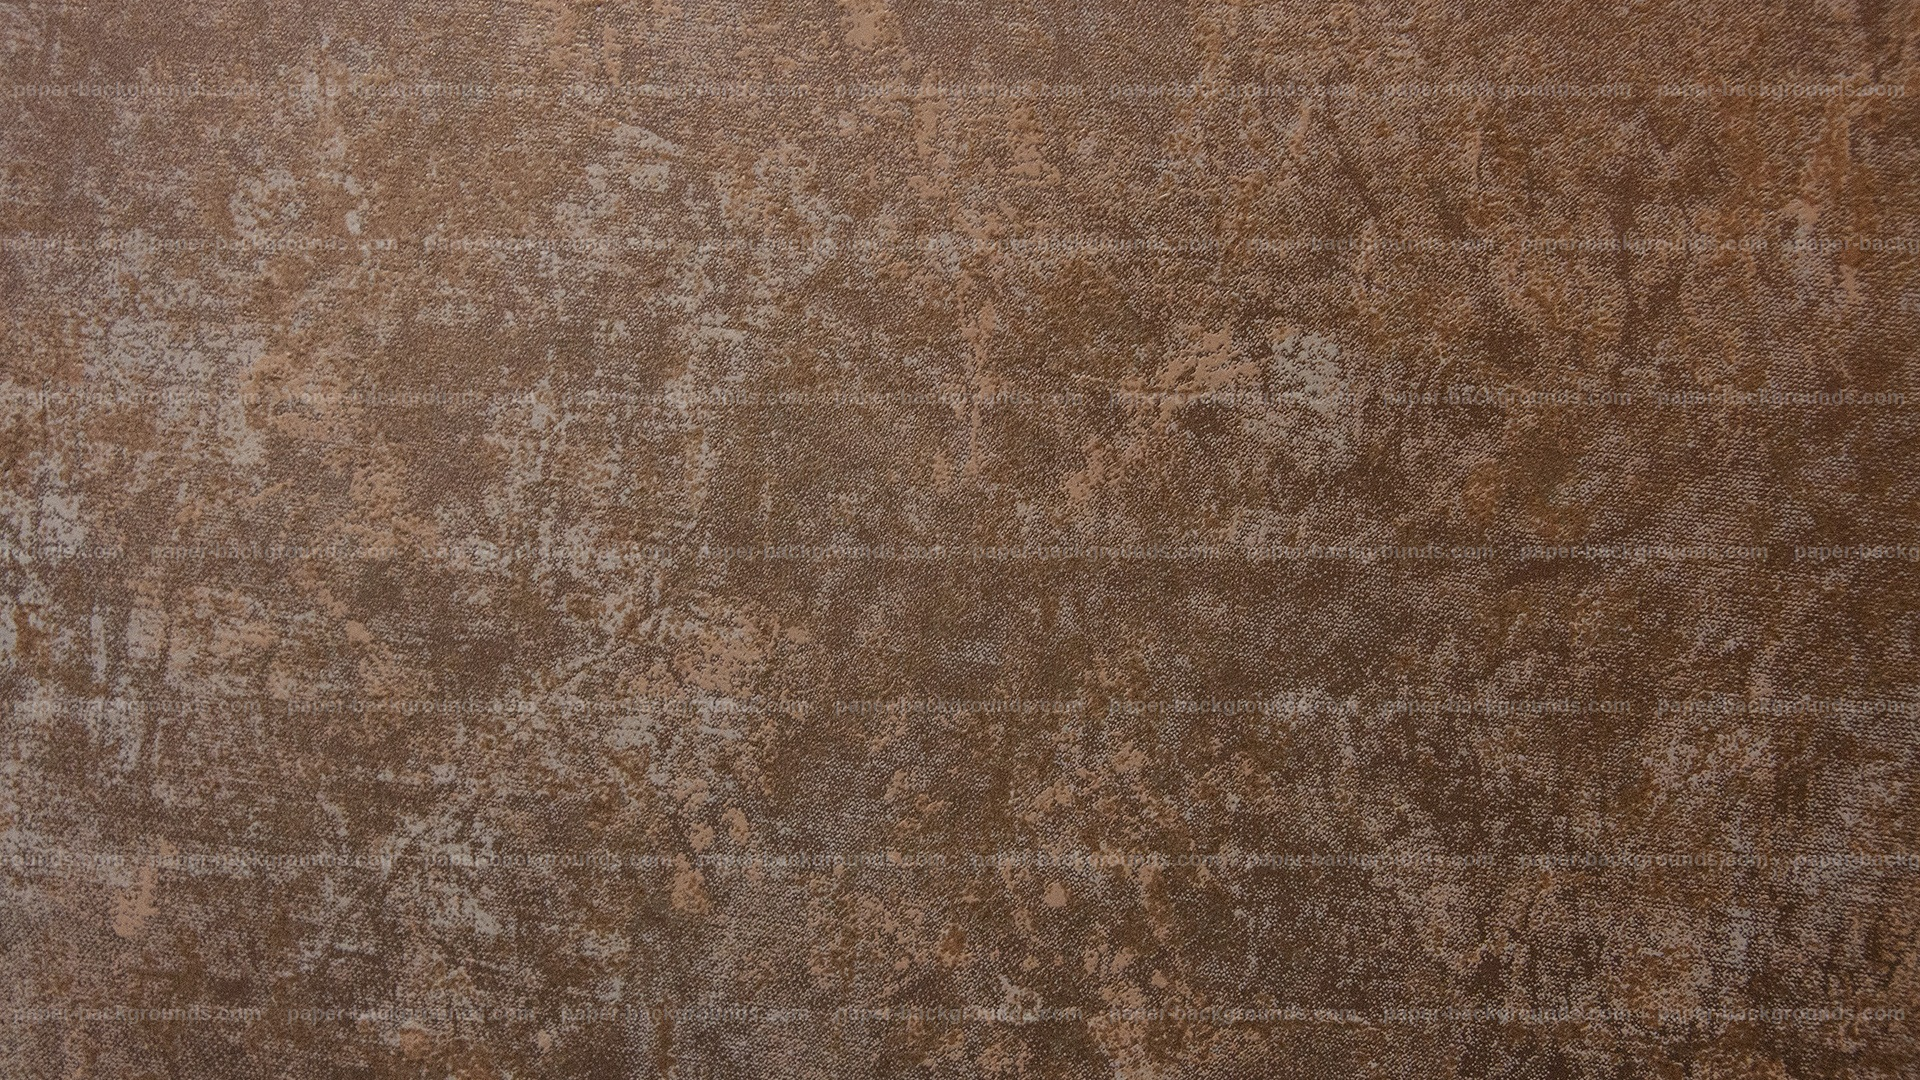 Brown Grunge Carpet Texture HD